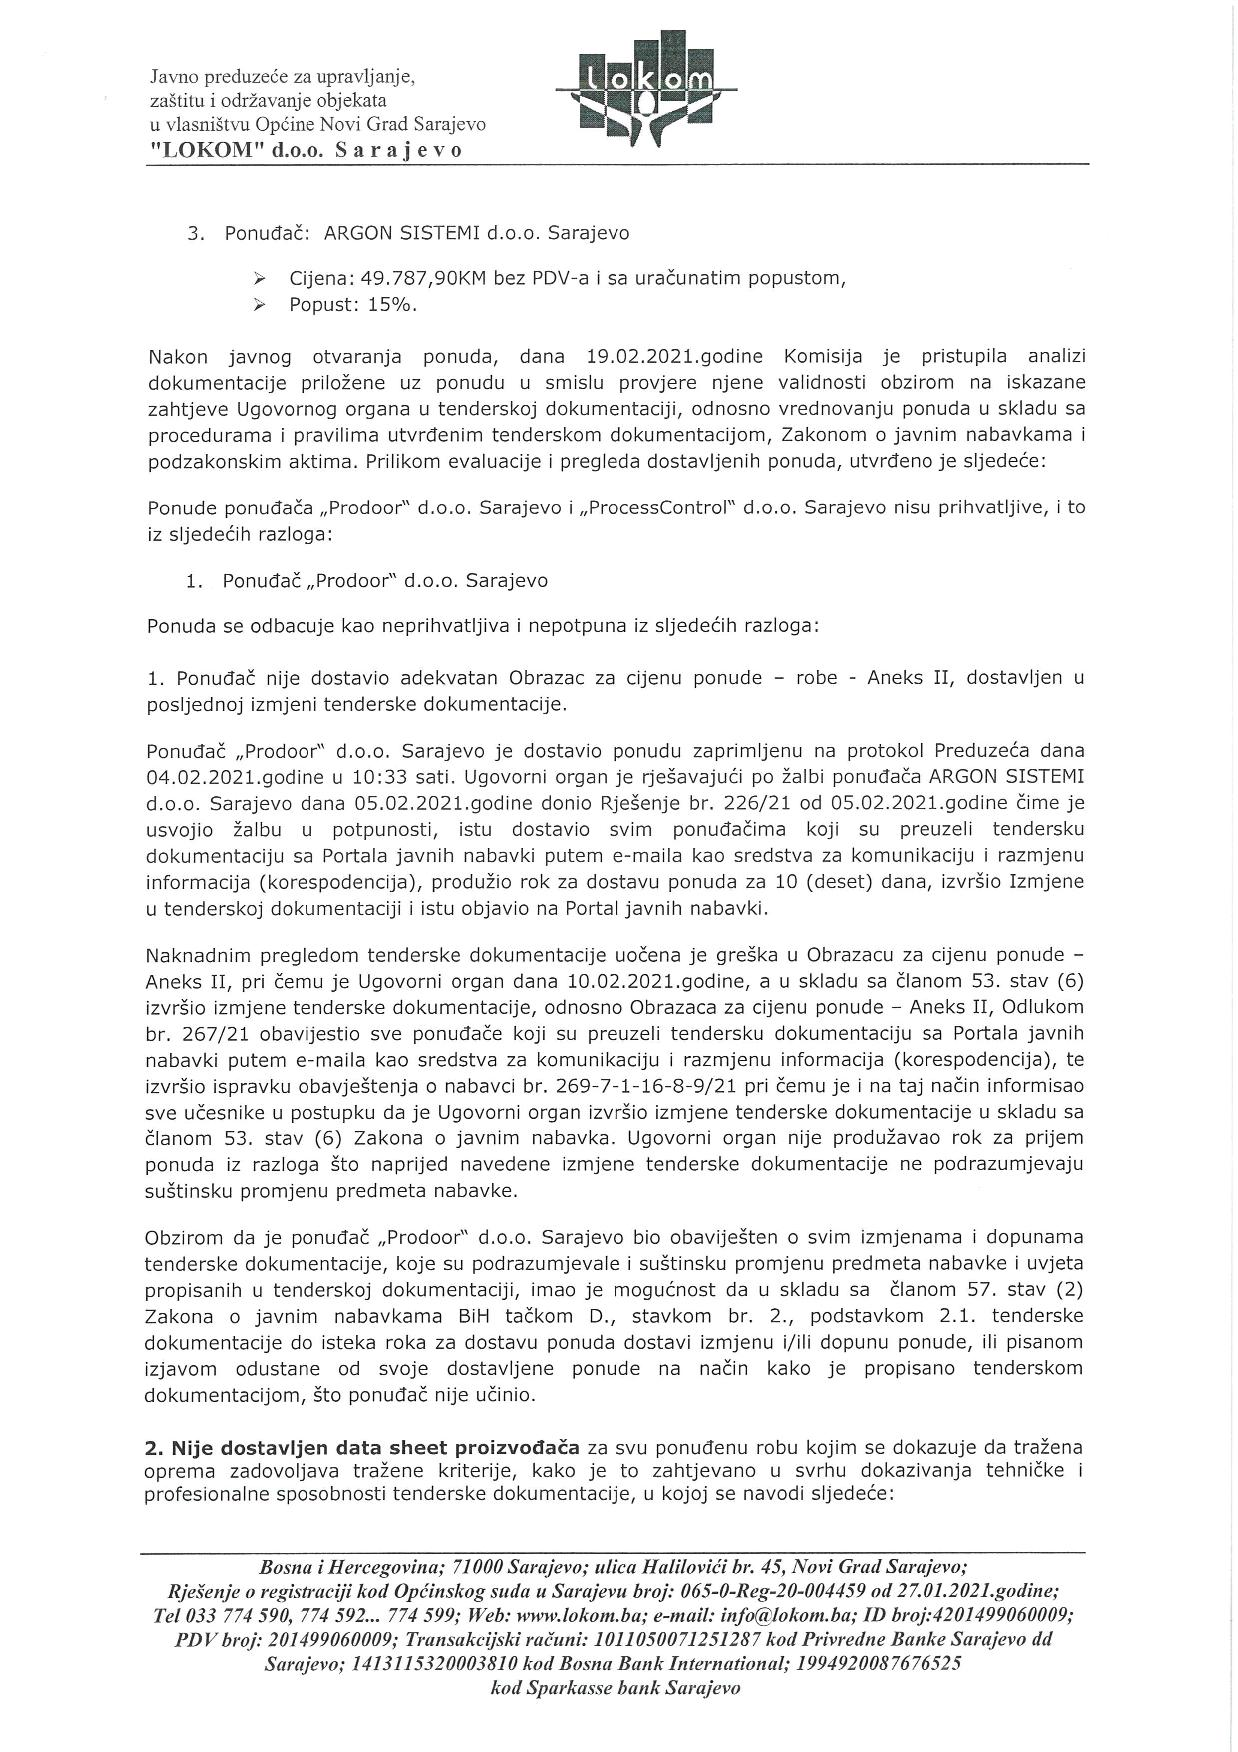 MX-M364N_20210223_100811-page-003